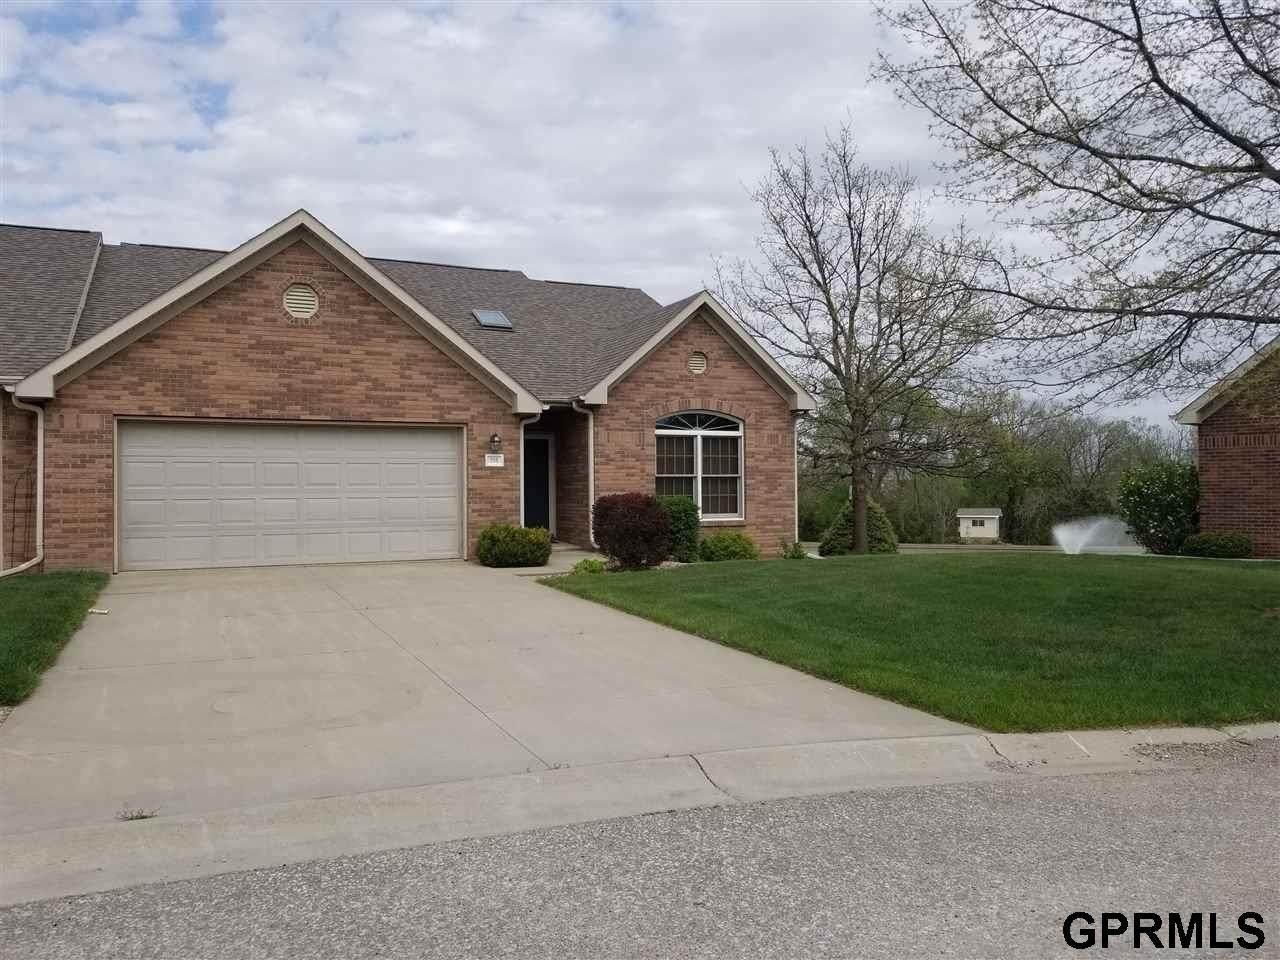 708 Clearwater Circle - Photo 1